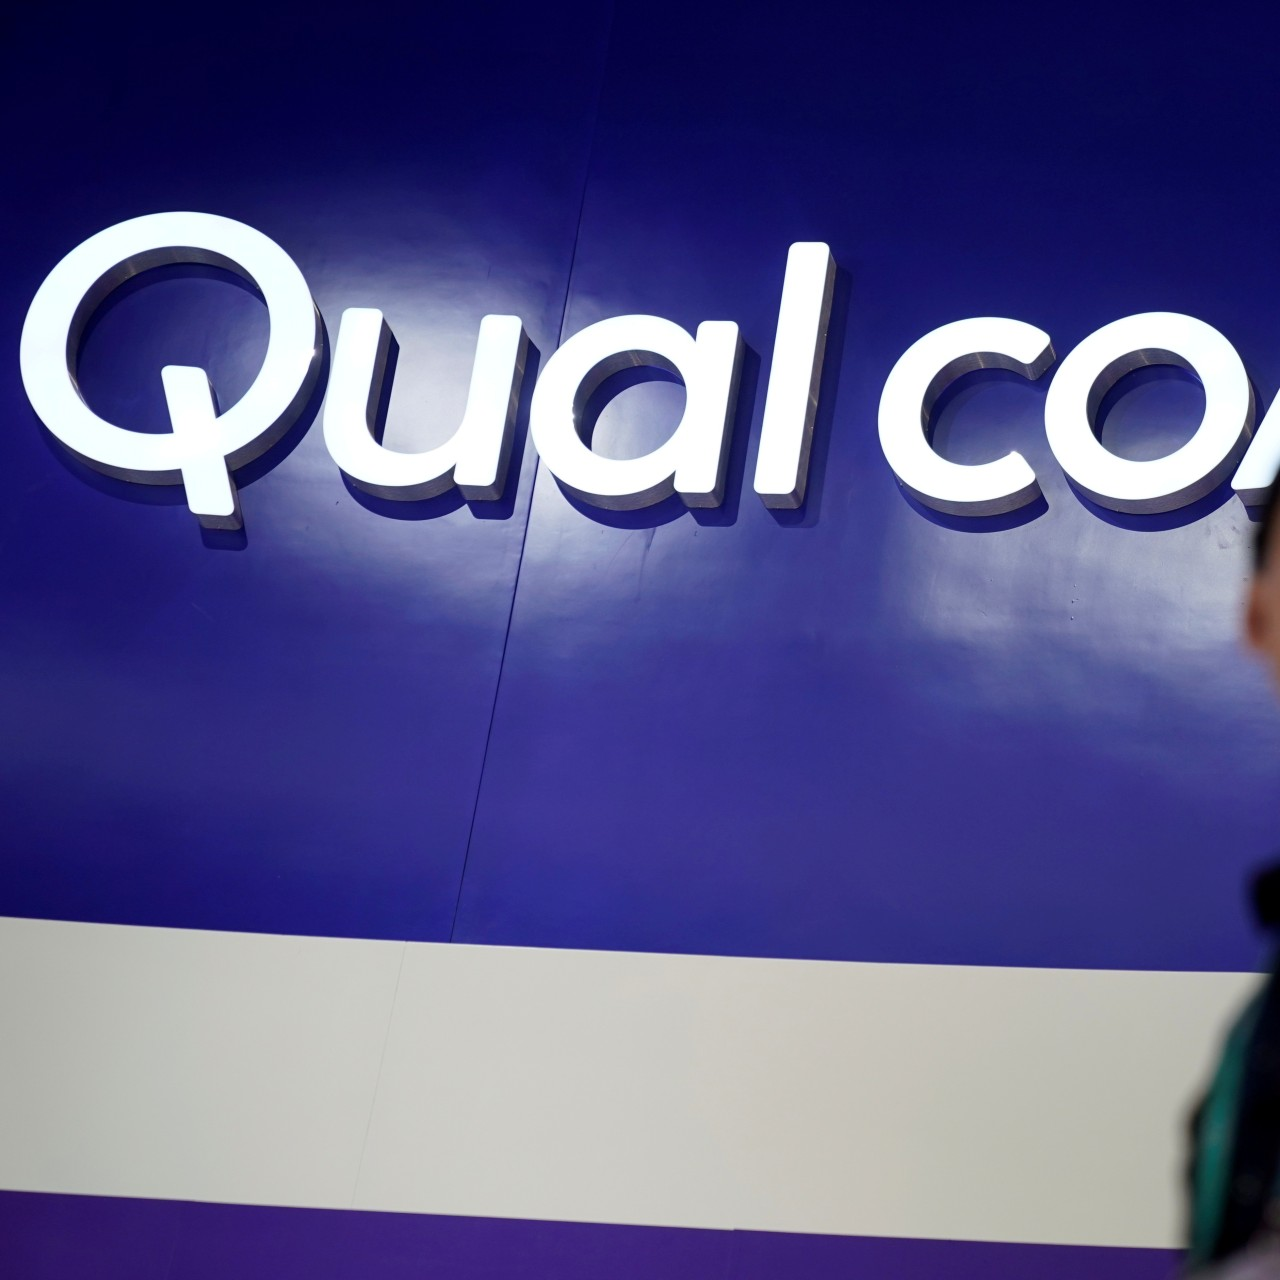 Qualcomm said to end chip partnership with local government in